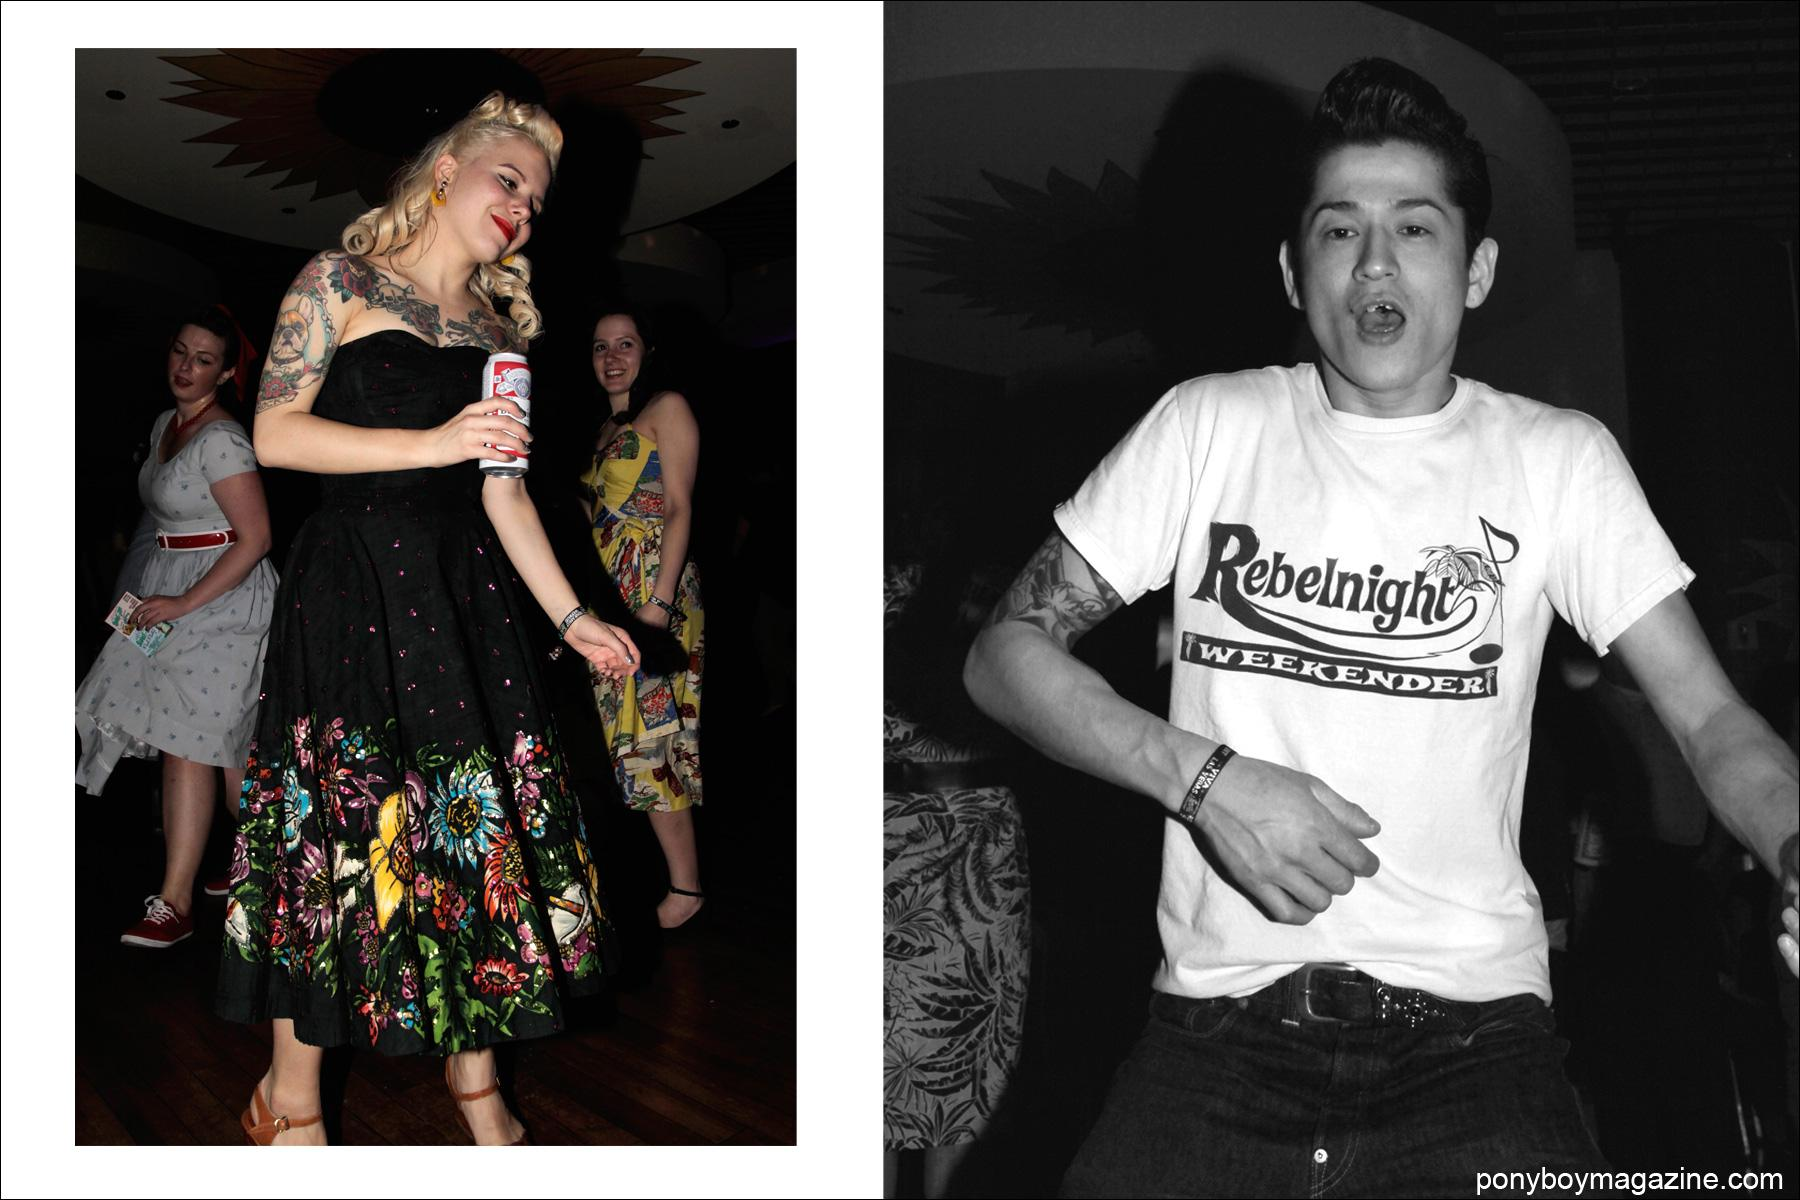 Rockabilly lovers on the dance floor at Tom Ingram's Viva Las Vegas 17 weekender. Photographs by Alexander Thompson for Ponyboy Magazine.